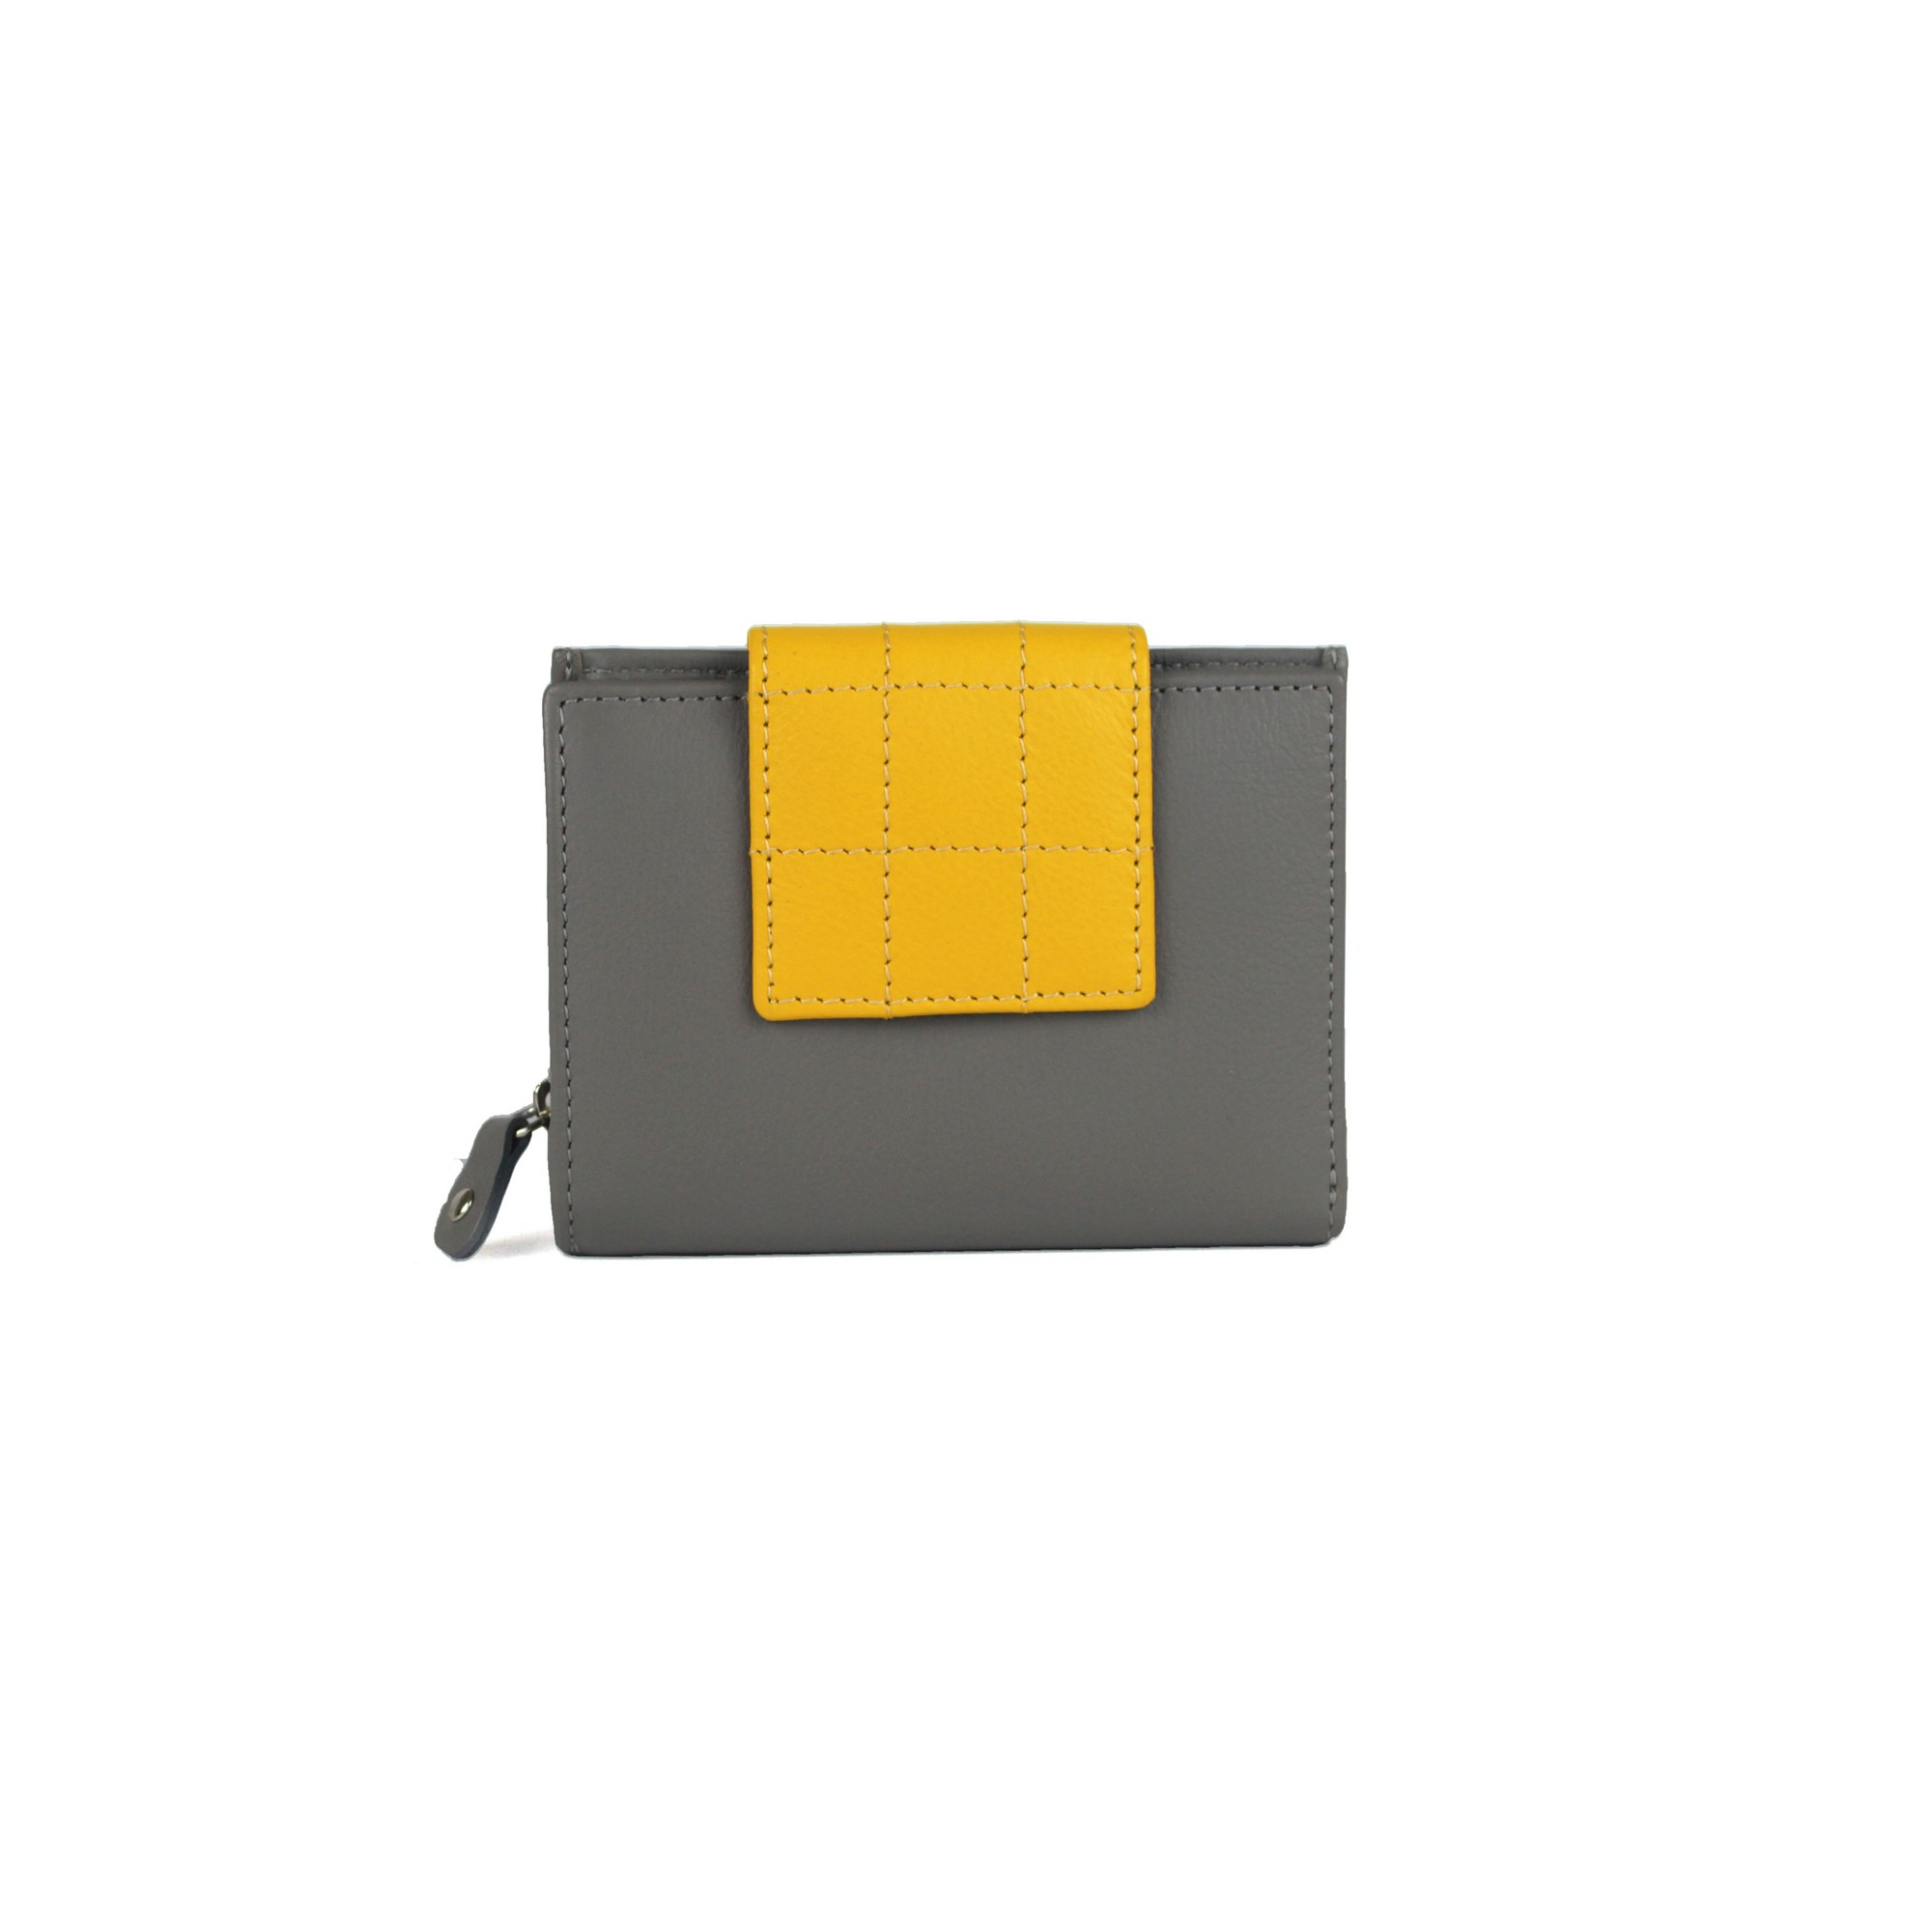 Eastern Counties Leather Womens/Ladies Diva Quilted Tab Purse (One size) (Grey/Ochre)